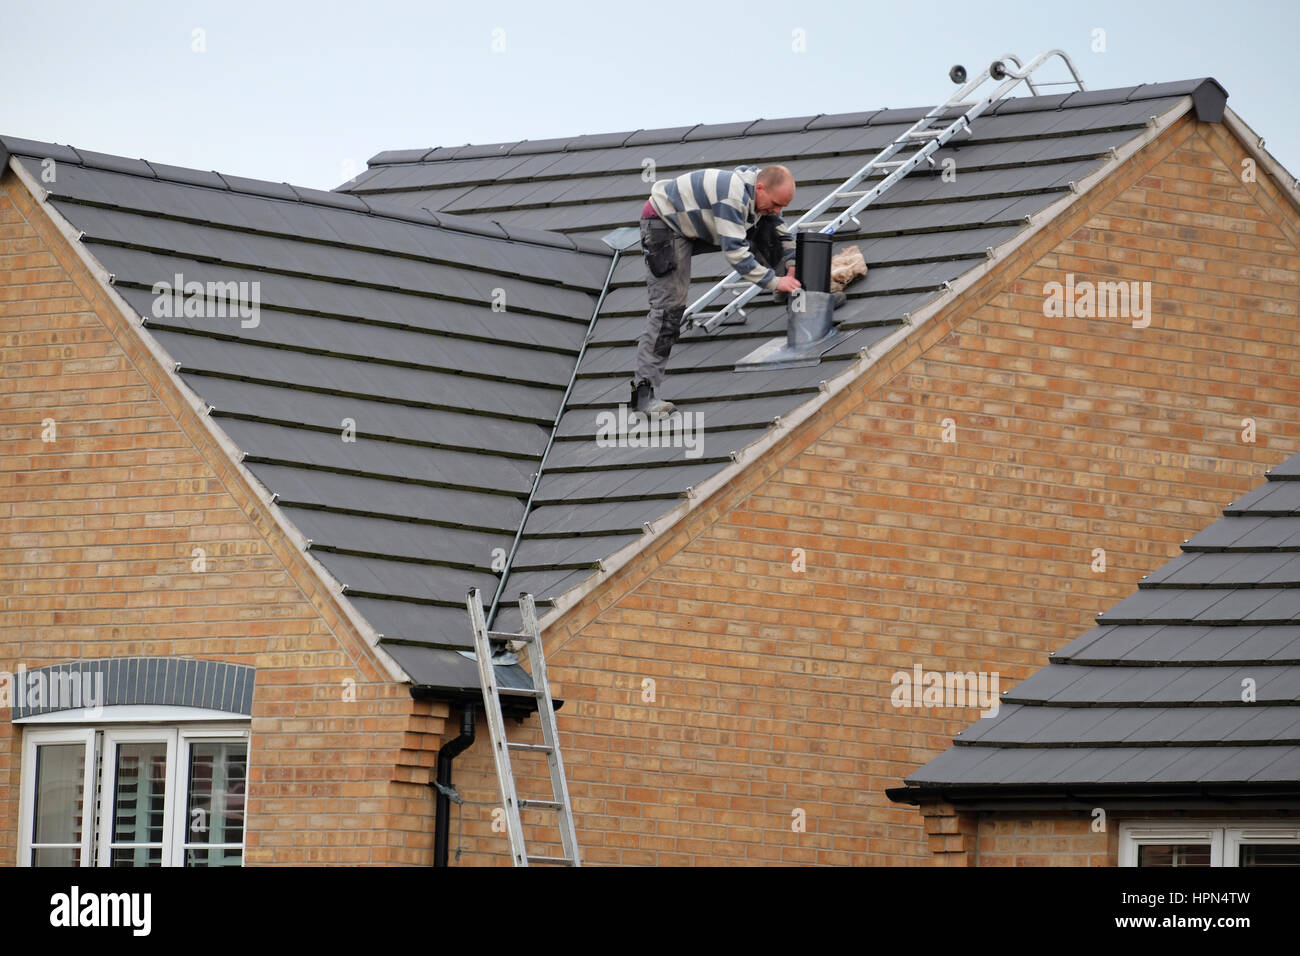 Workman on house roof installing a chimney. - Stock Image